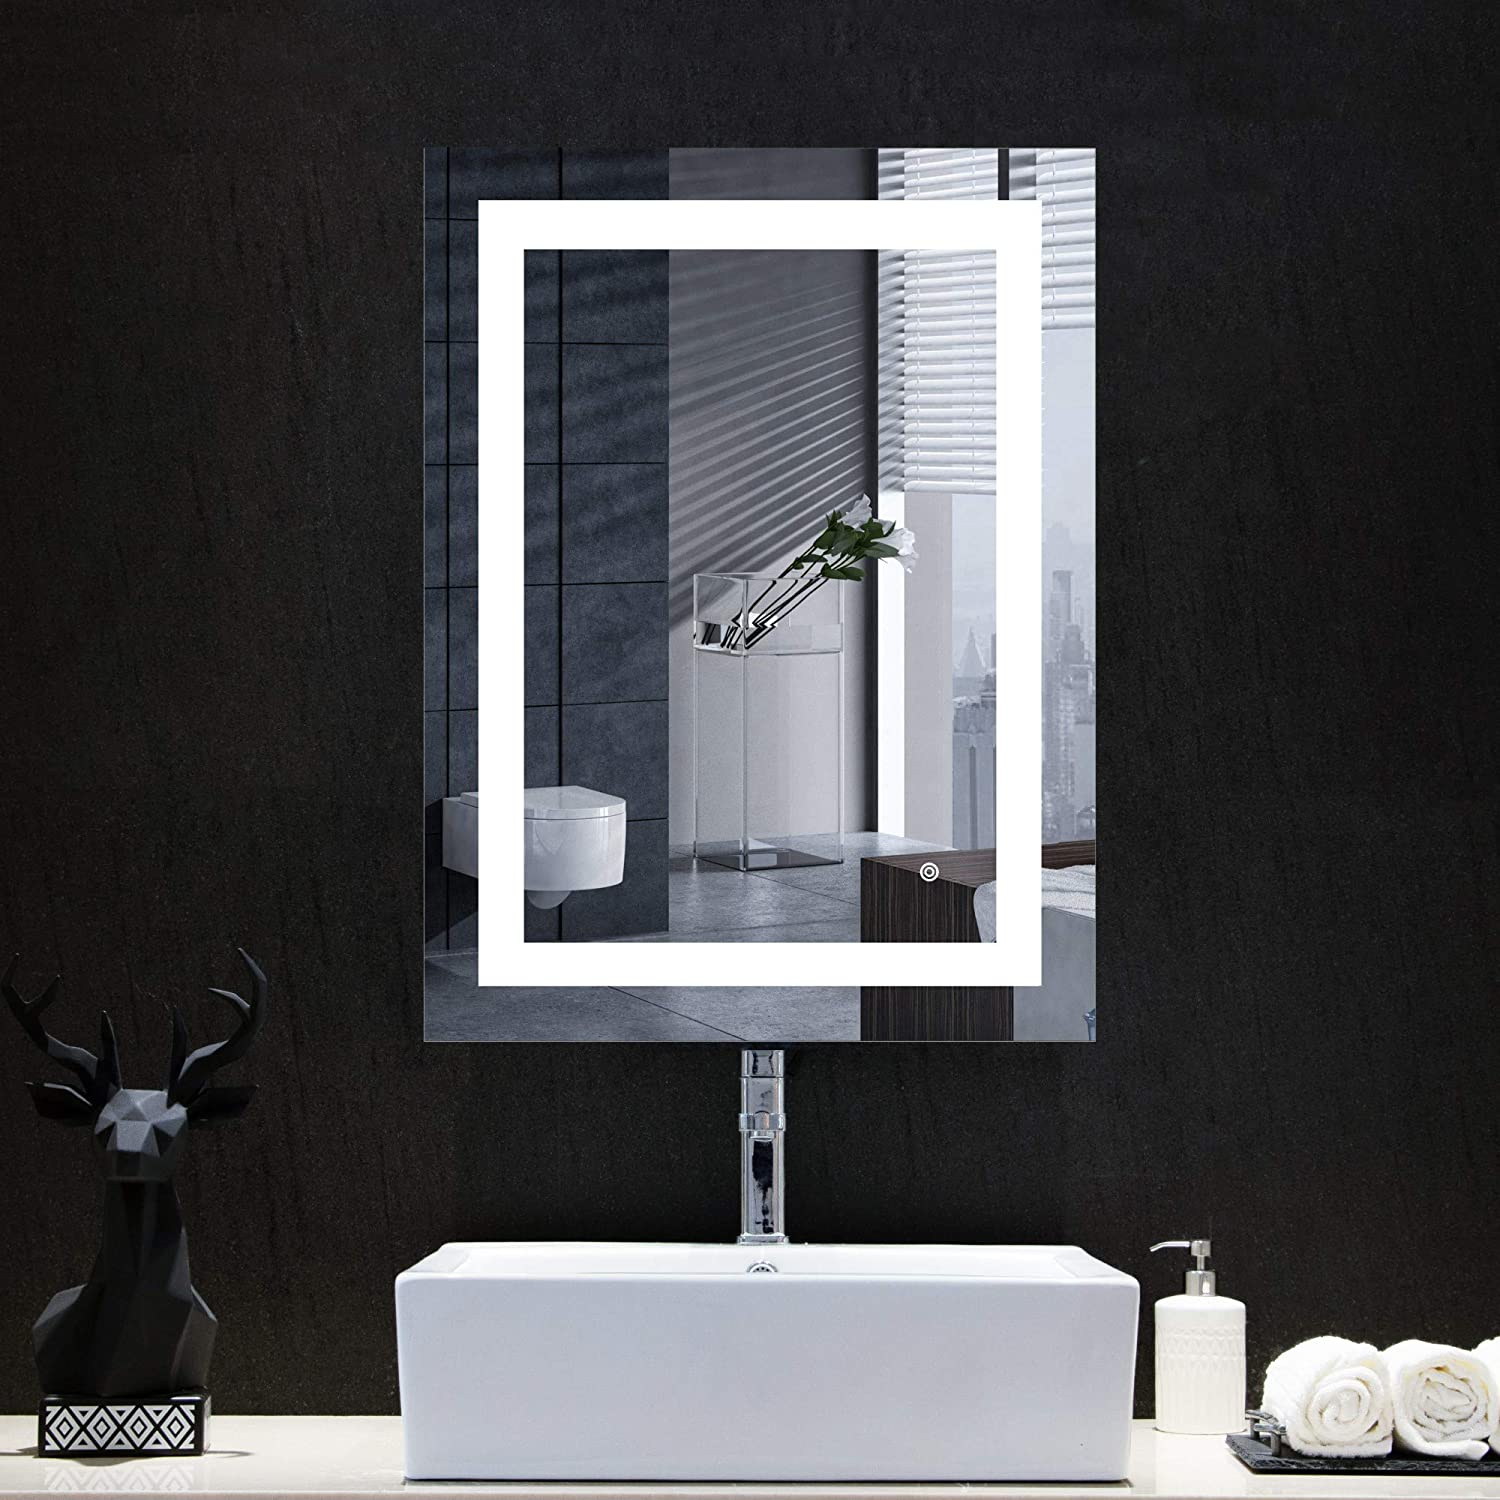 MIRPLUS 24 x 32 inch LED Vanity Bathroom Mirror with Touch Switch, Wall Mounted Backlit Lighted Makeup Mirror, Dimmable Color Temperature Warm/Cold White+AntiFog+Waterproof+ Vertical & Horizontal